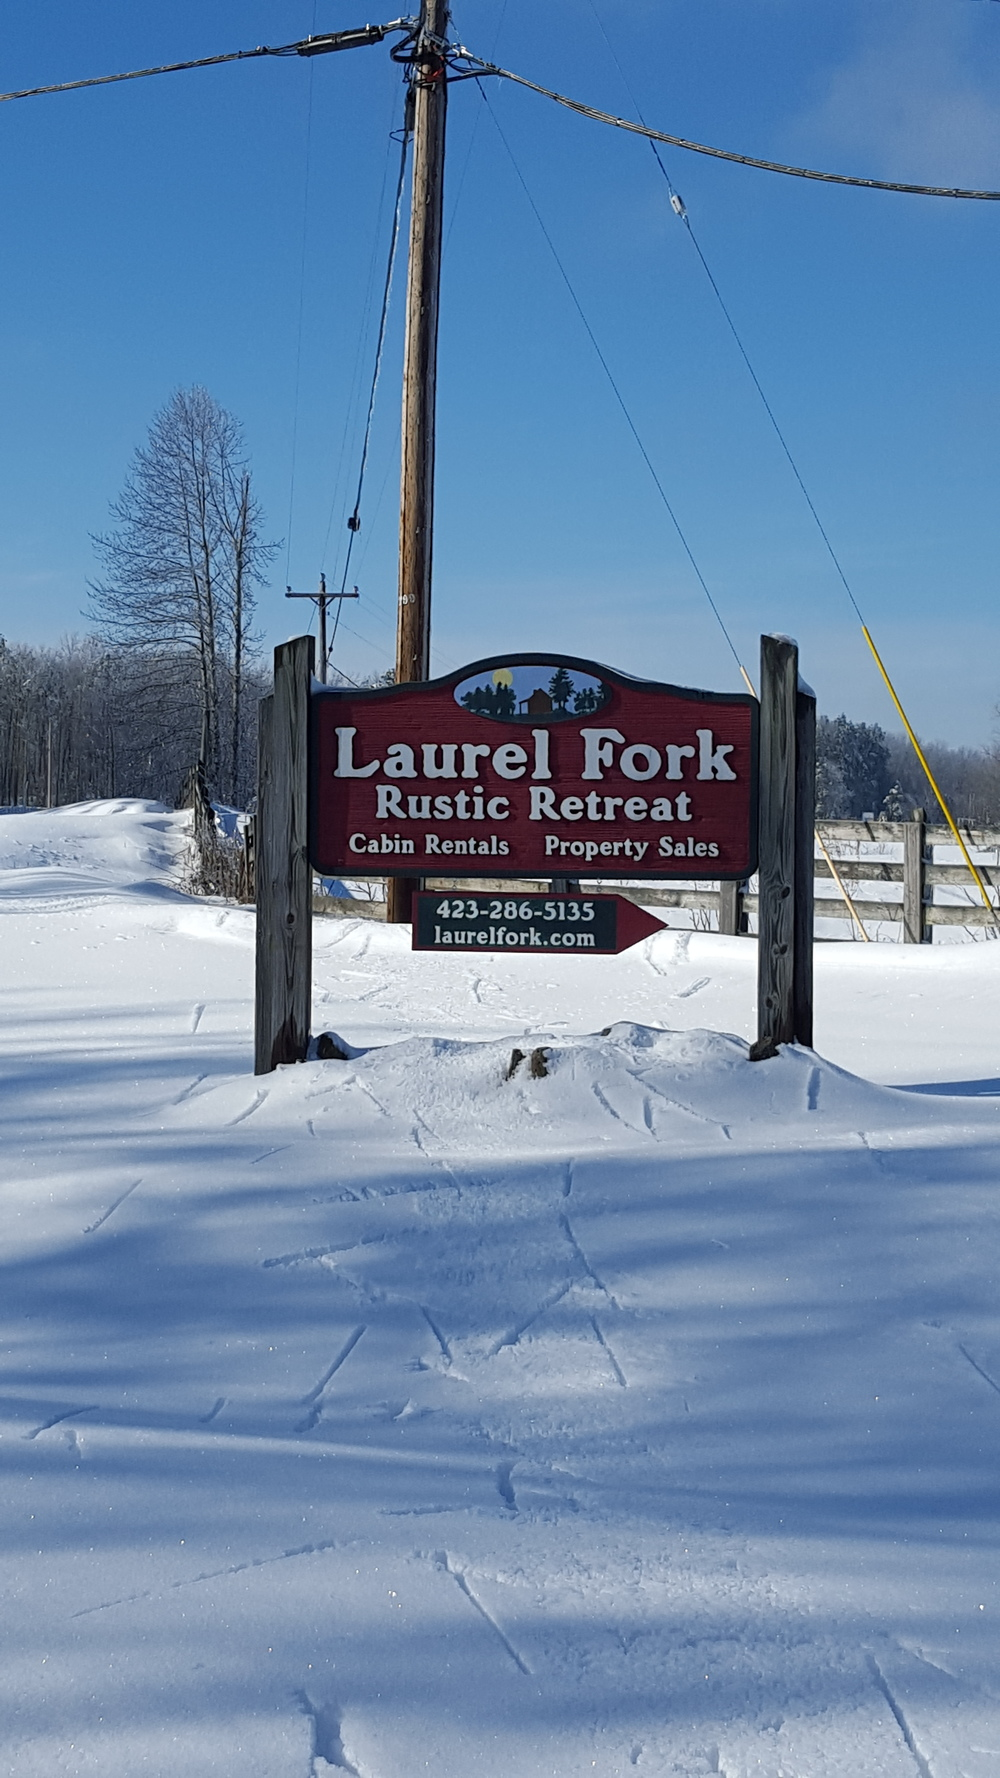 Snowy Laurel Fork Rustic Retreat sign